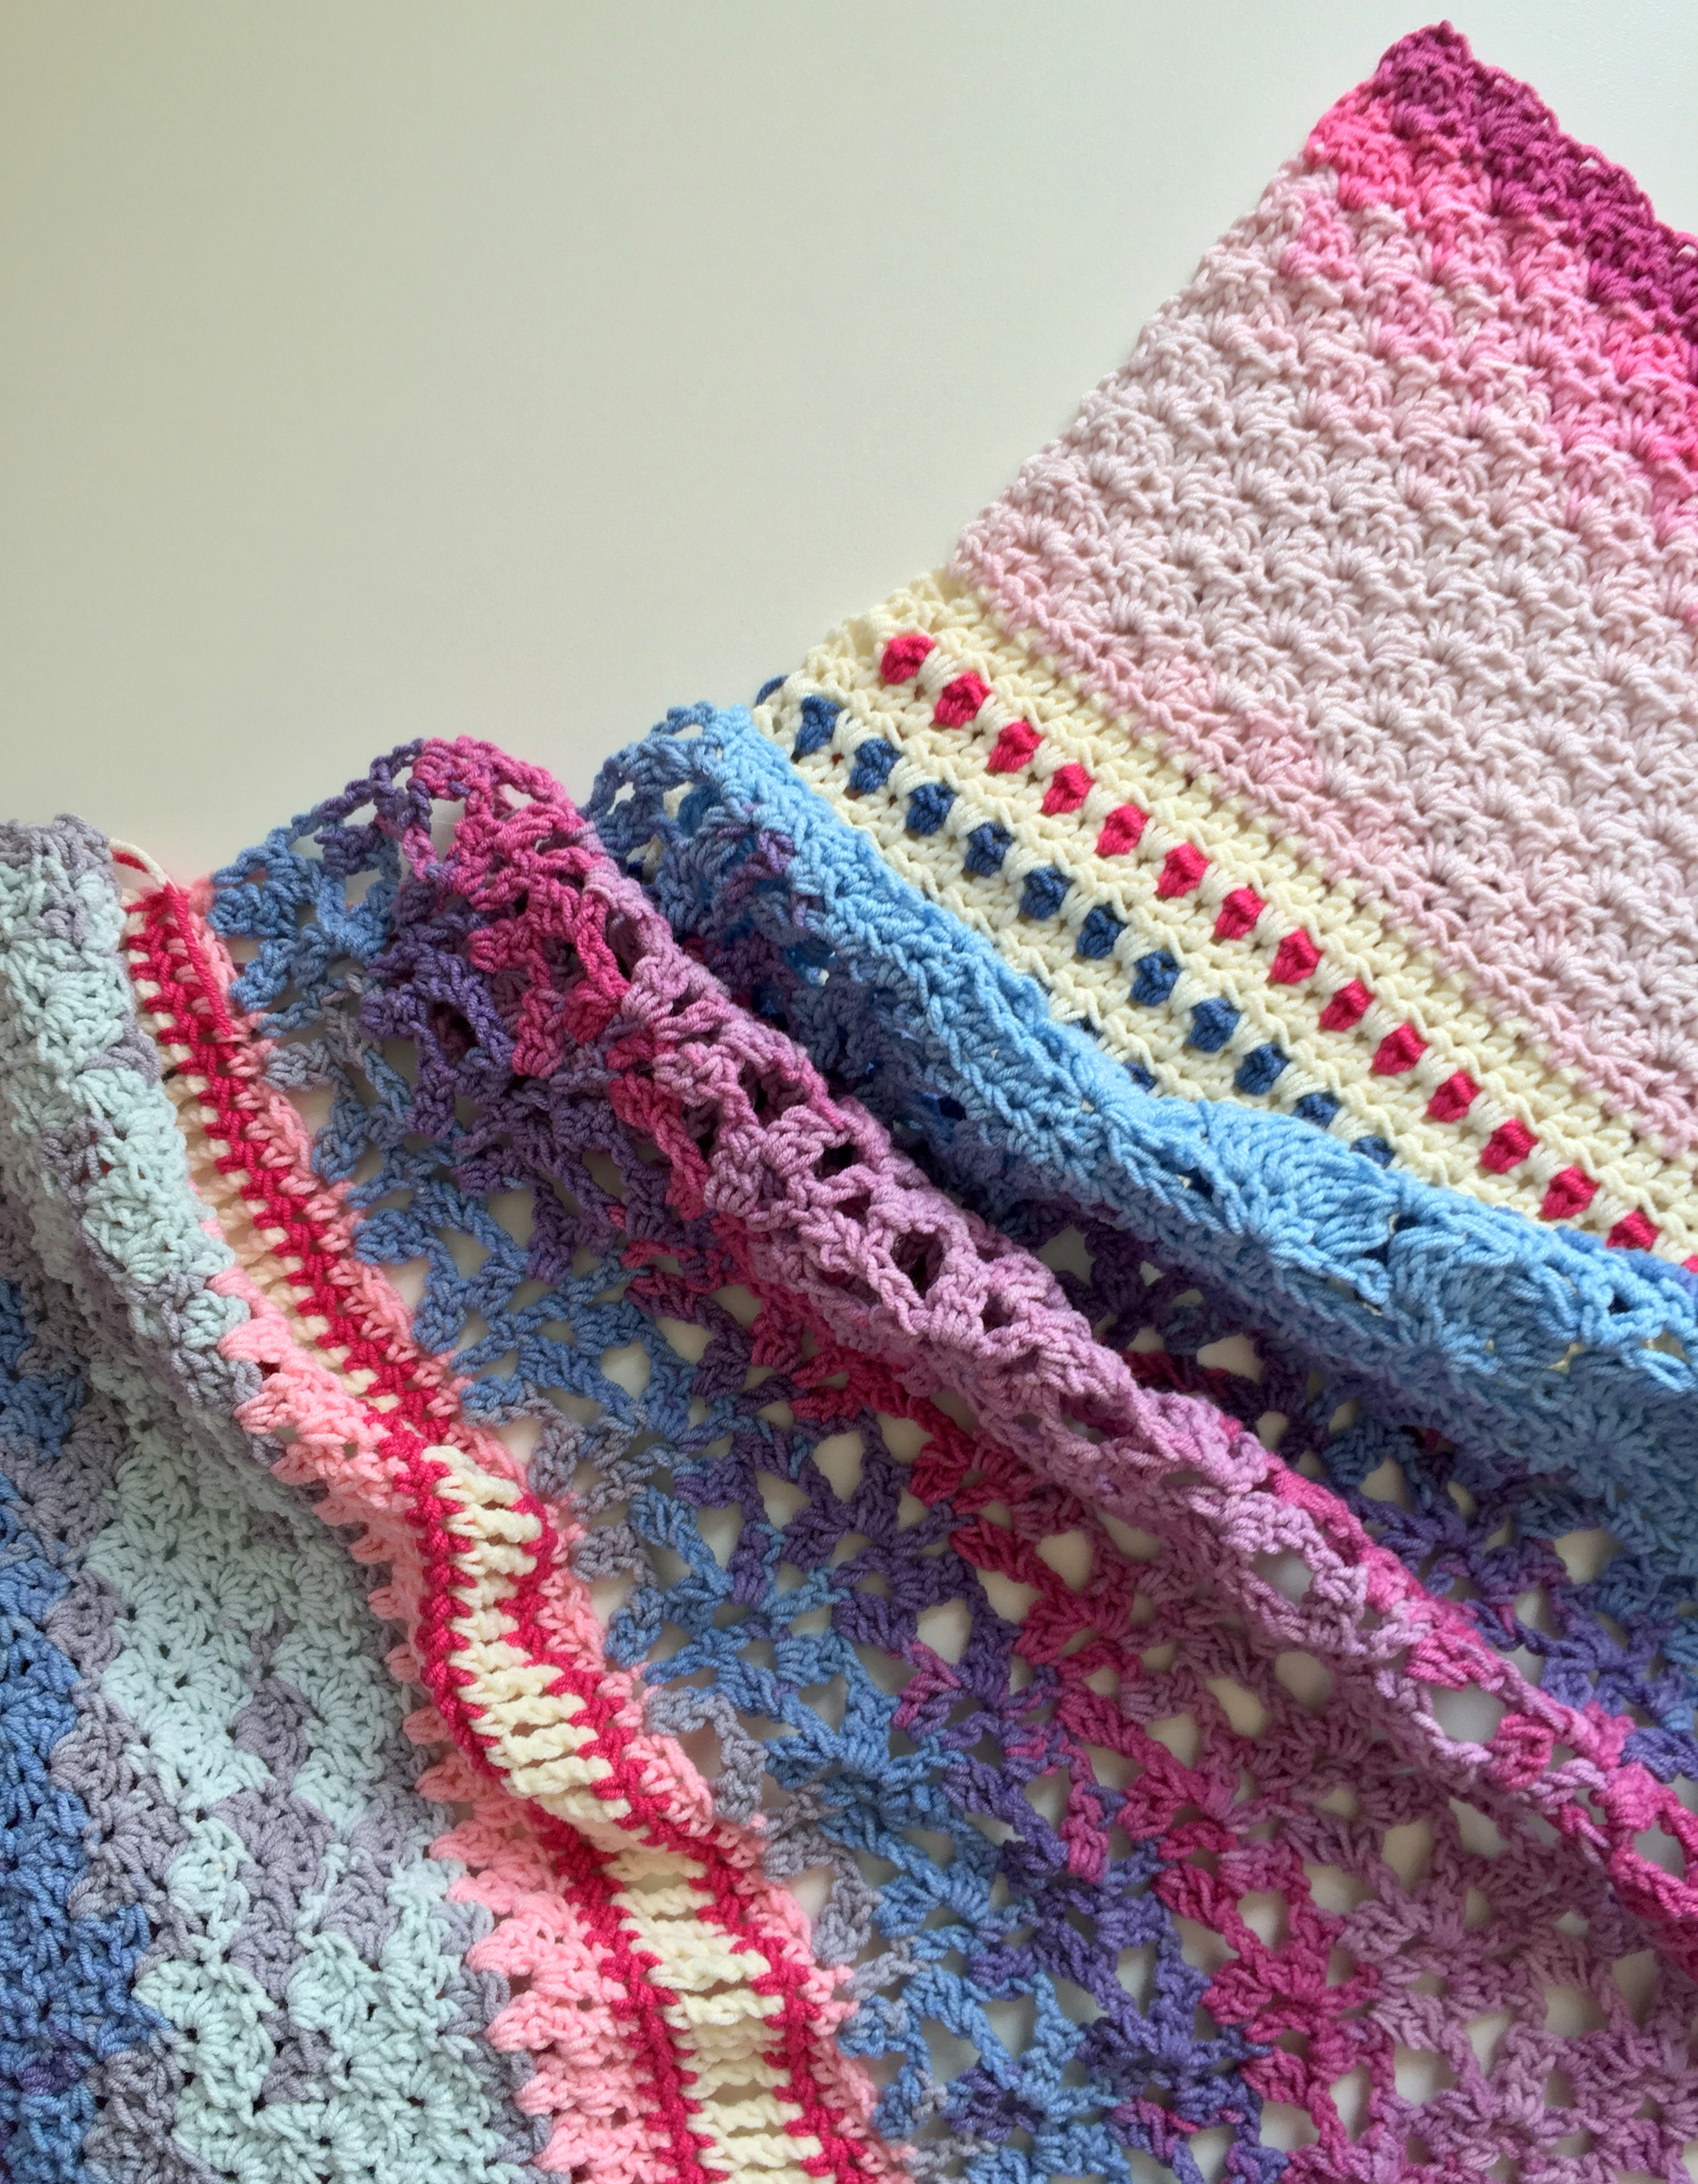 Crocheting Over Ends : ... - The ?Monsoon Stole? maRRose - Colorful Crochet & Crafts